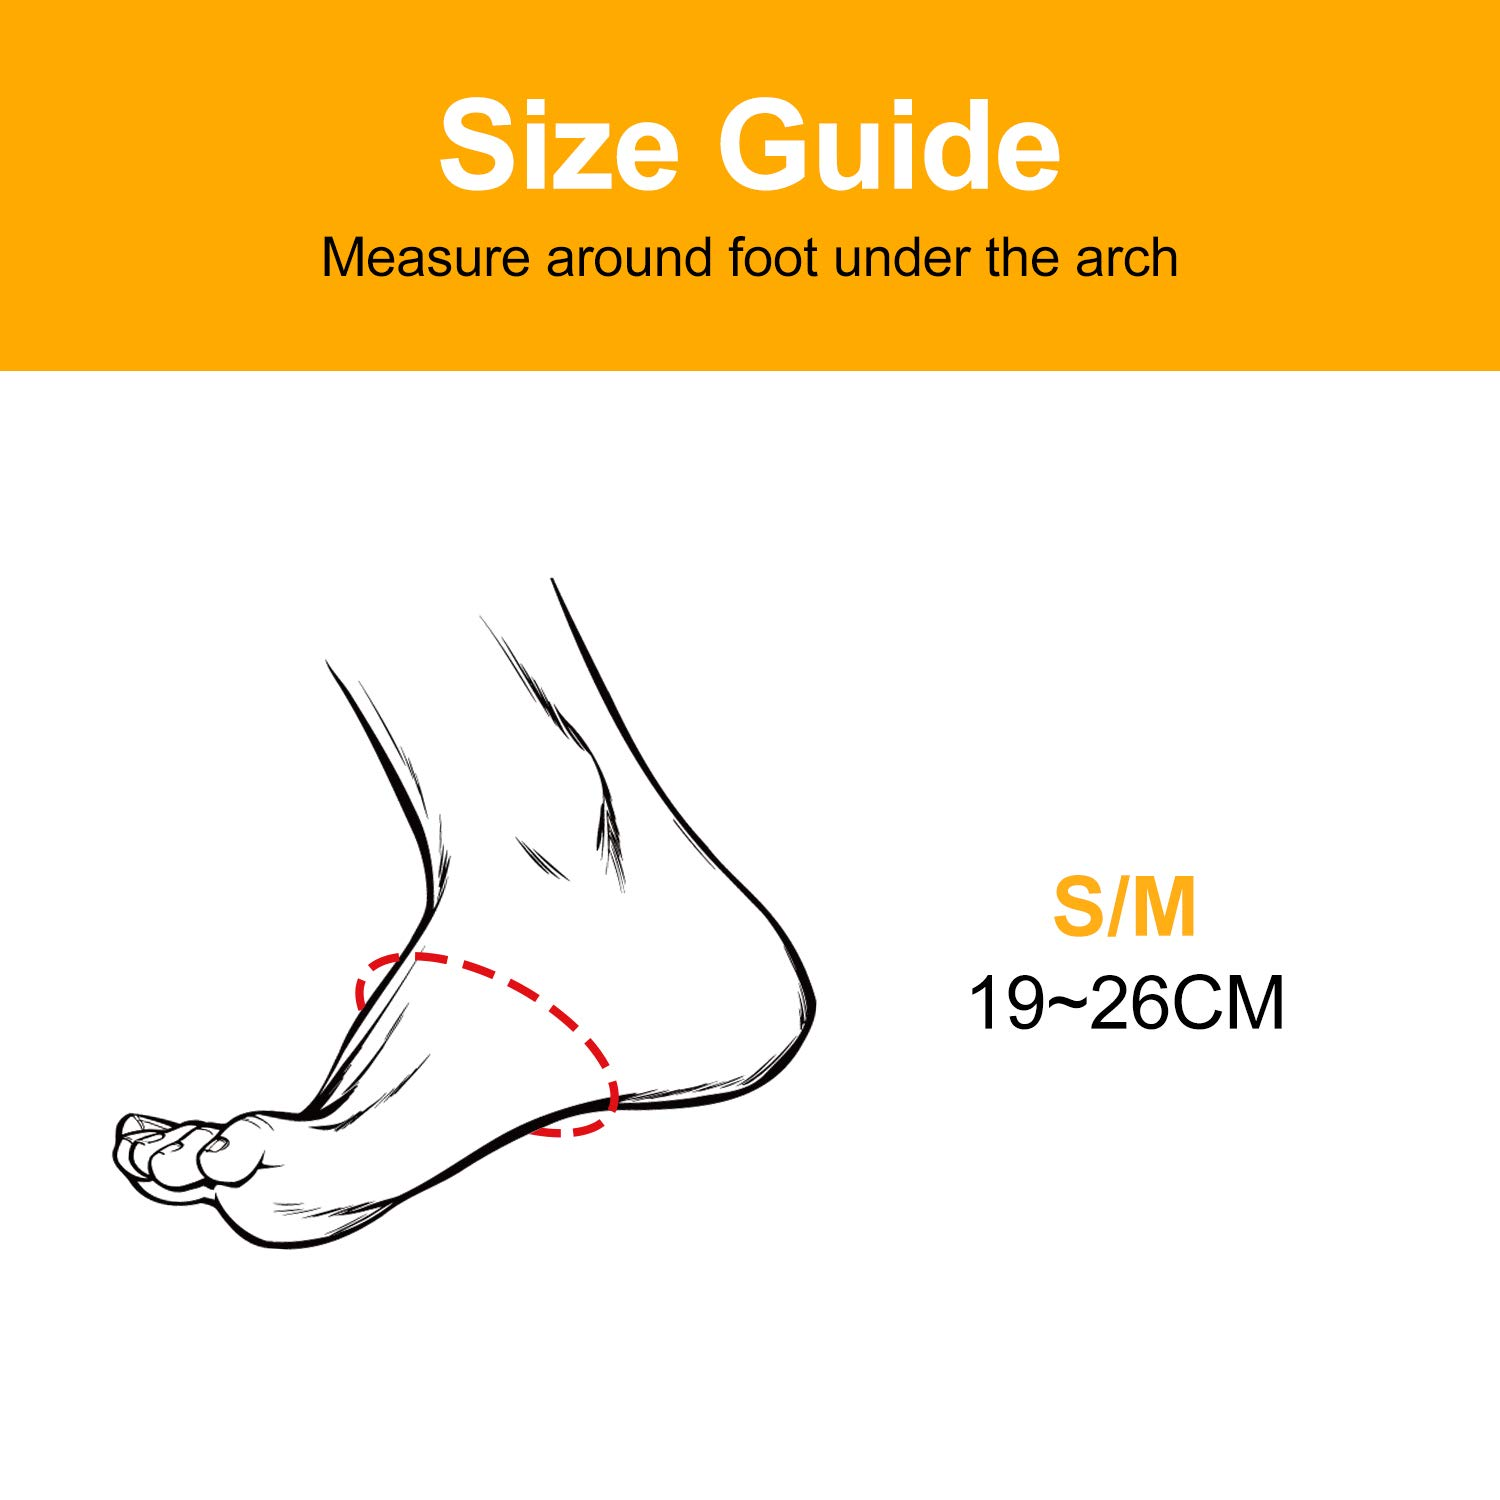 SENWOW Ankle Support, Adjustable Ankle Brace for Sports Running and Sprain Recovery, Protects Against Arthritis (Sold as Single Item)